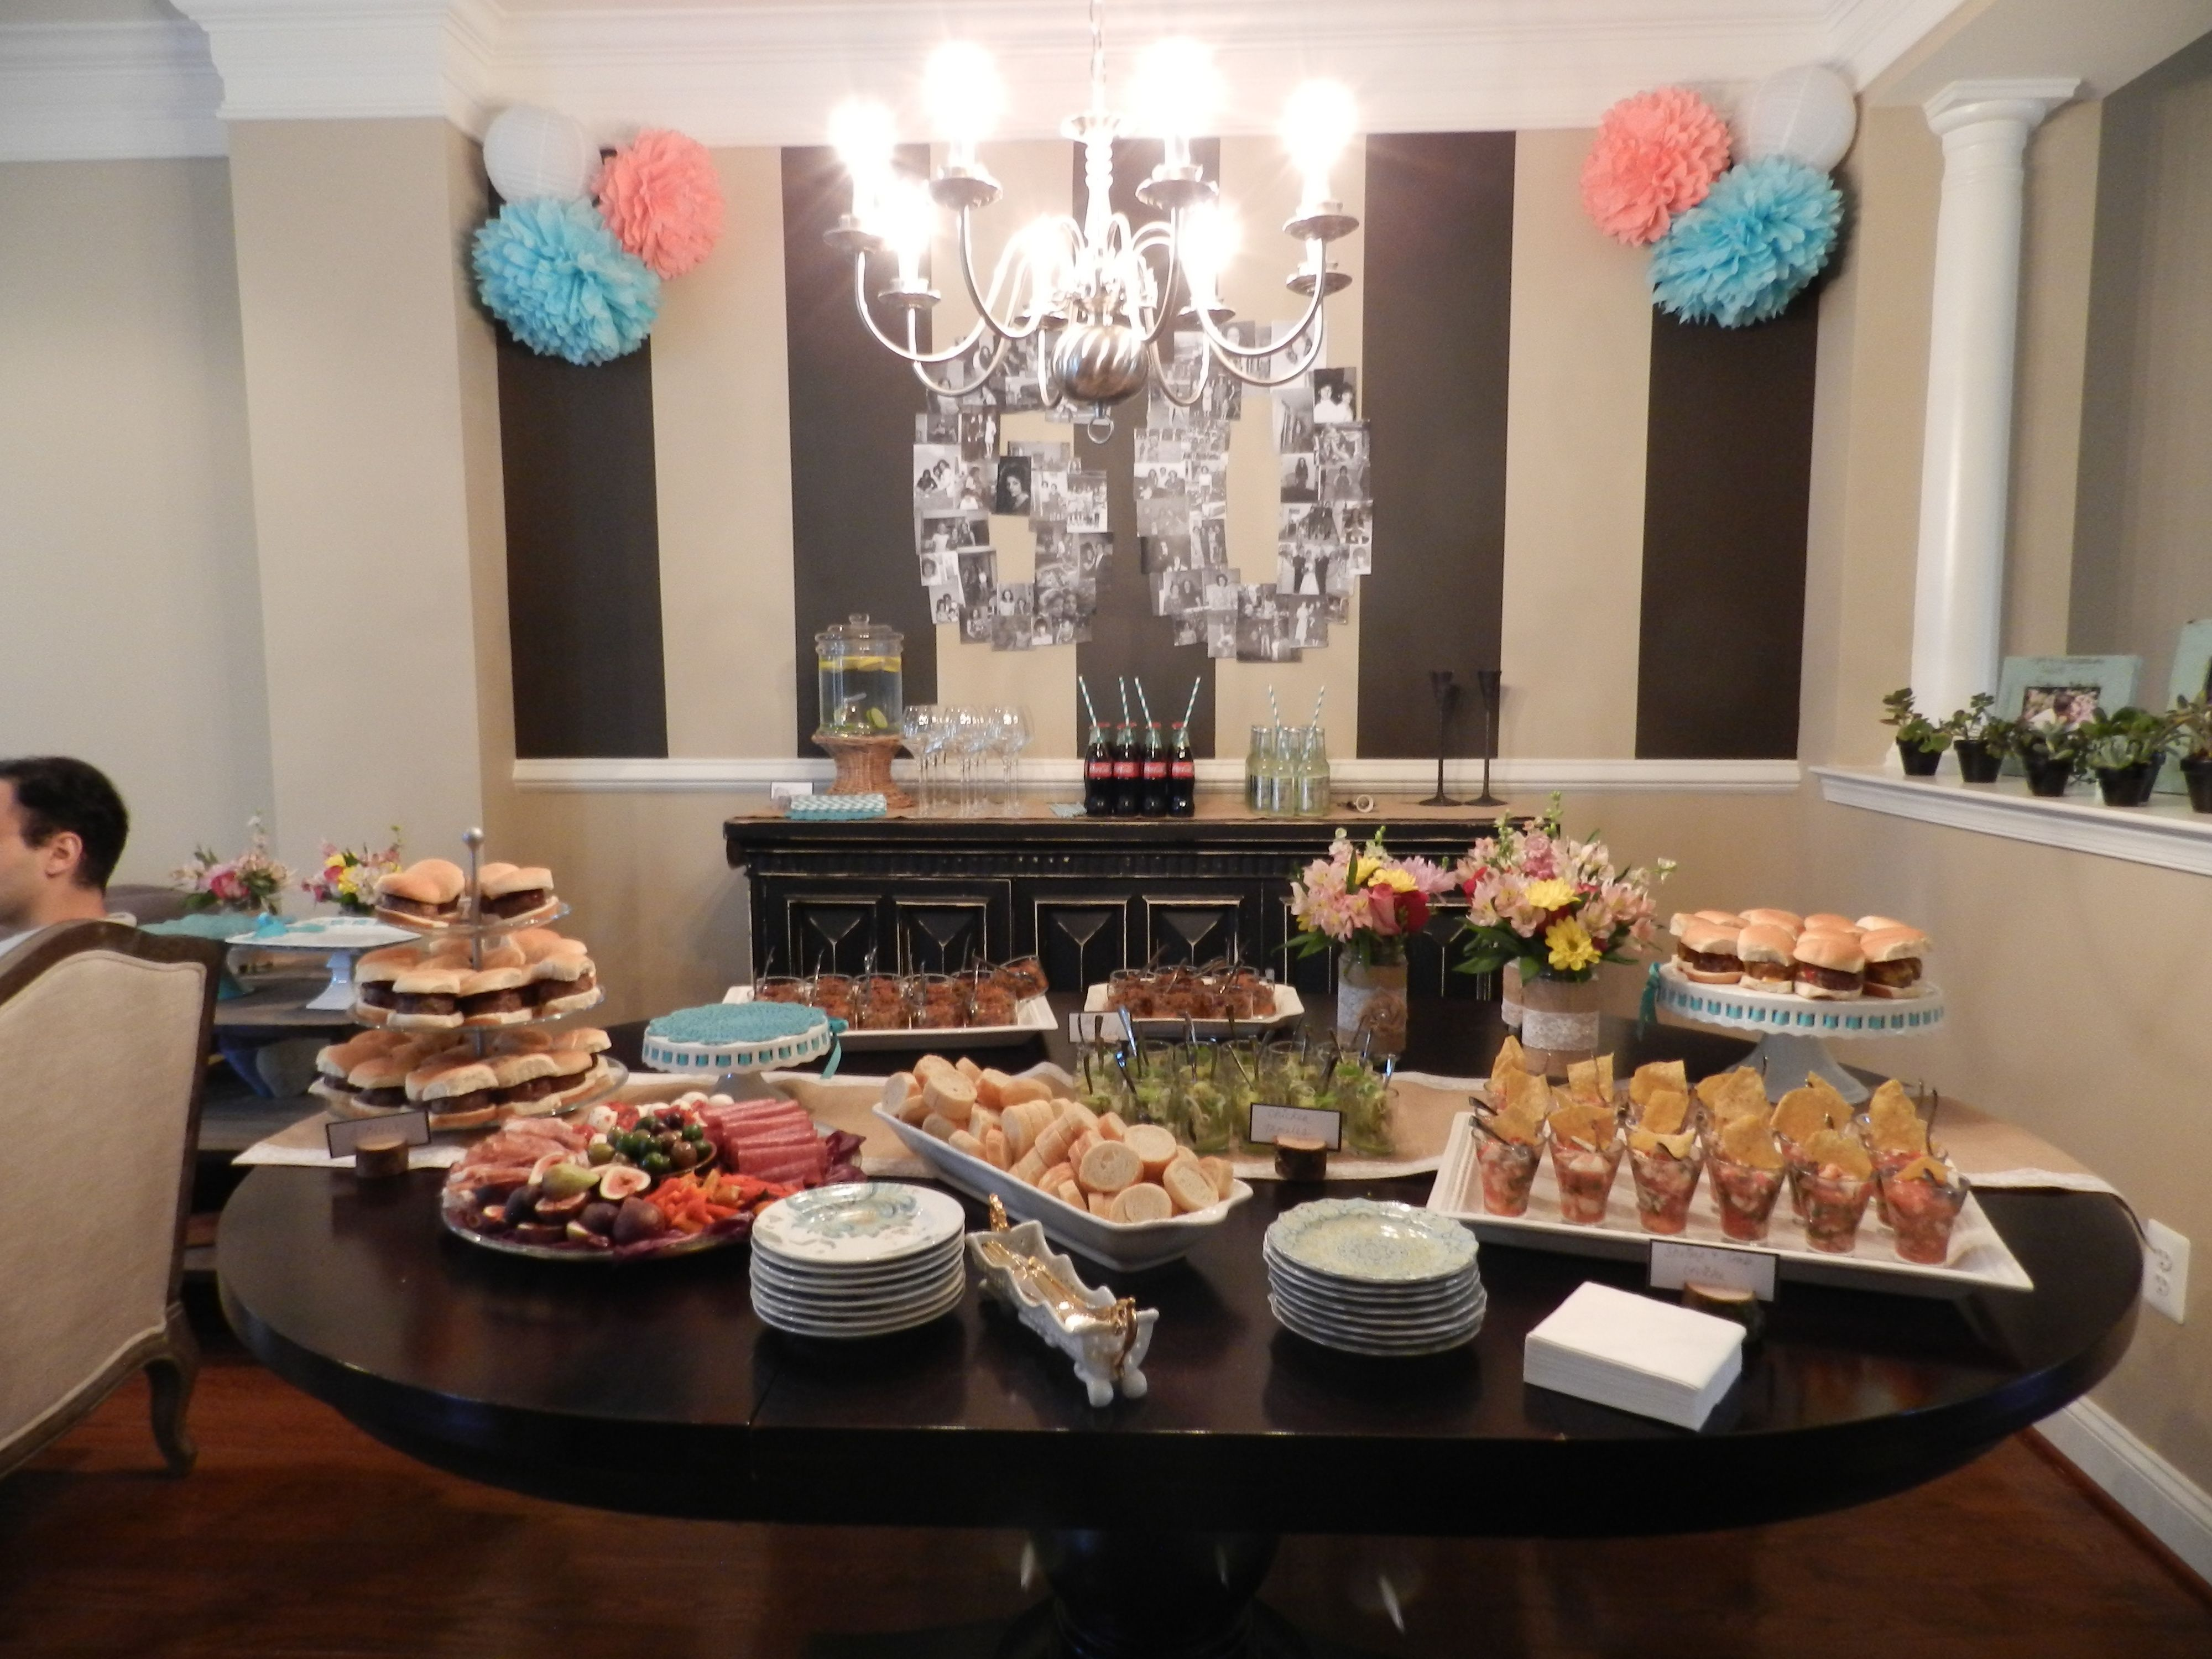 60th birthday party my friend threw for her mother! Look